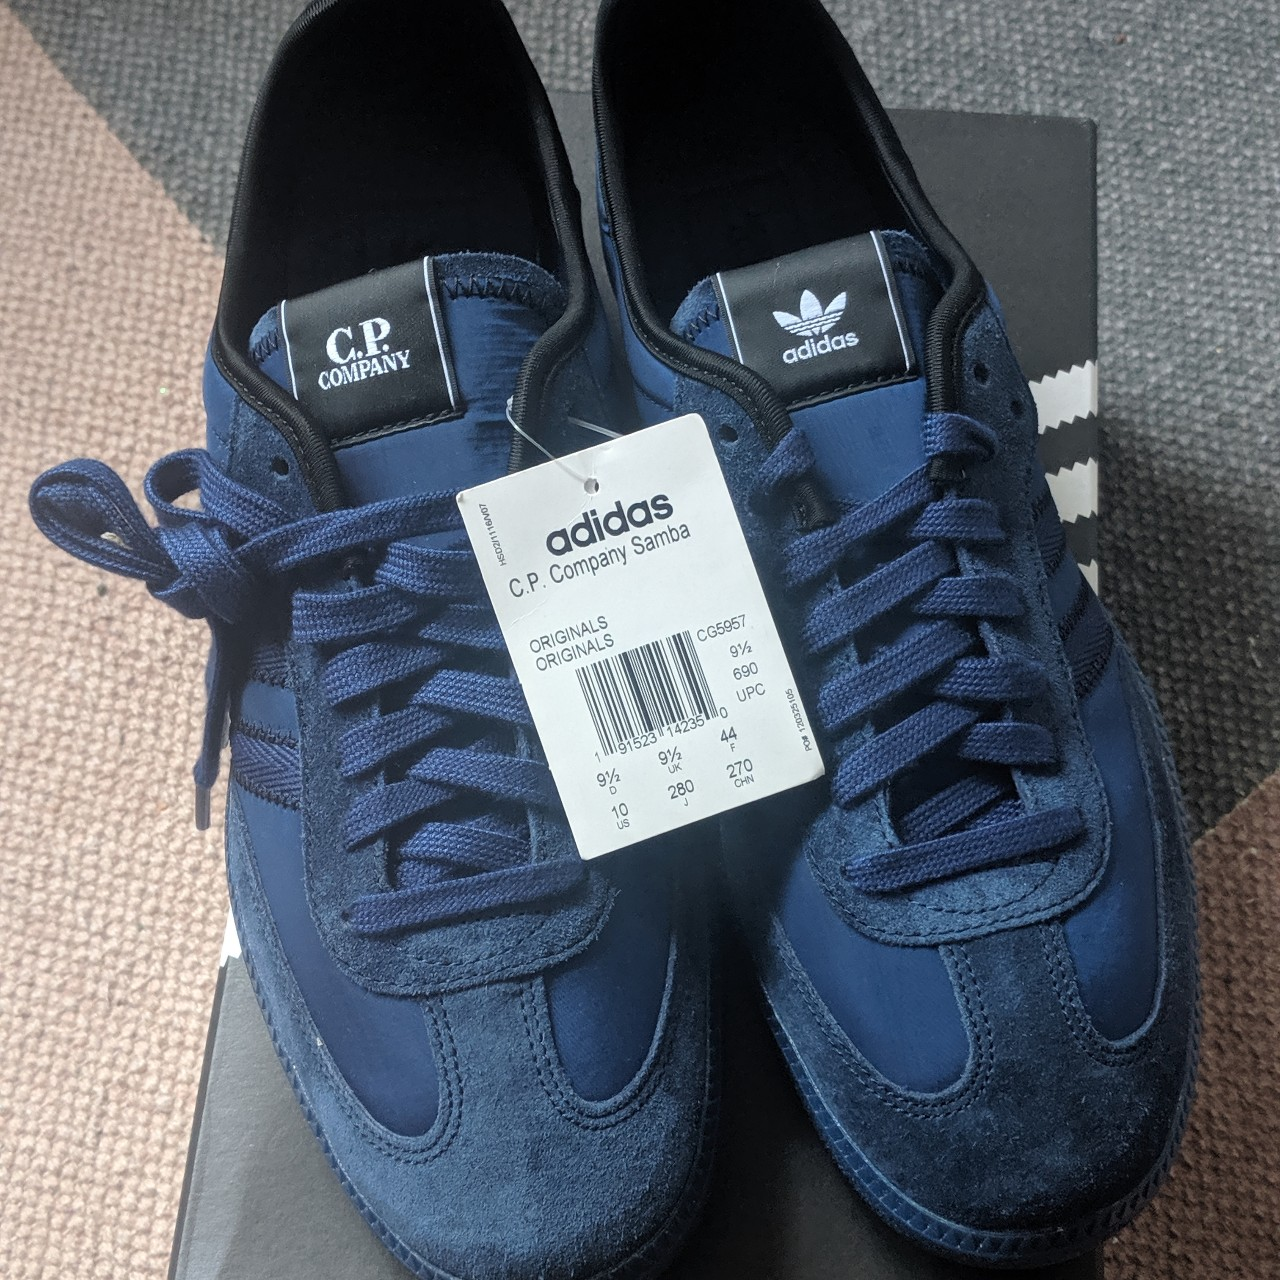 on sale 1f075 289e8 Adidas X CP Company Men's Samba Blue. Size UK... - Depop